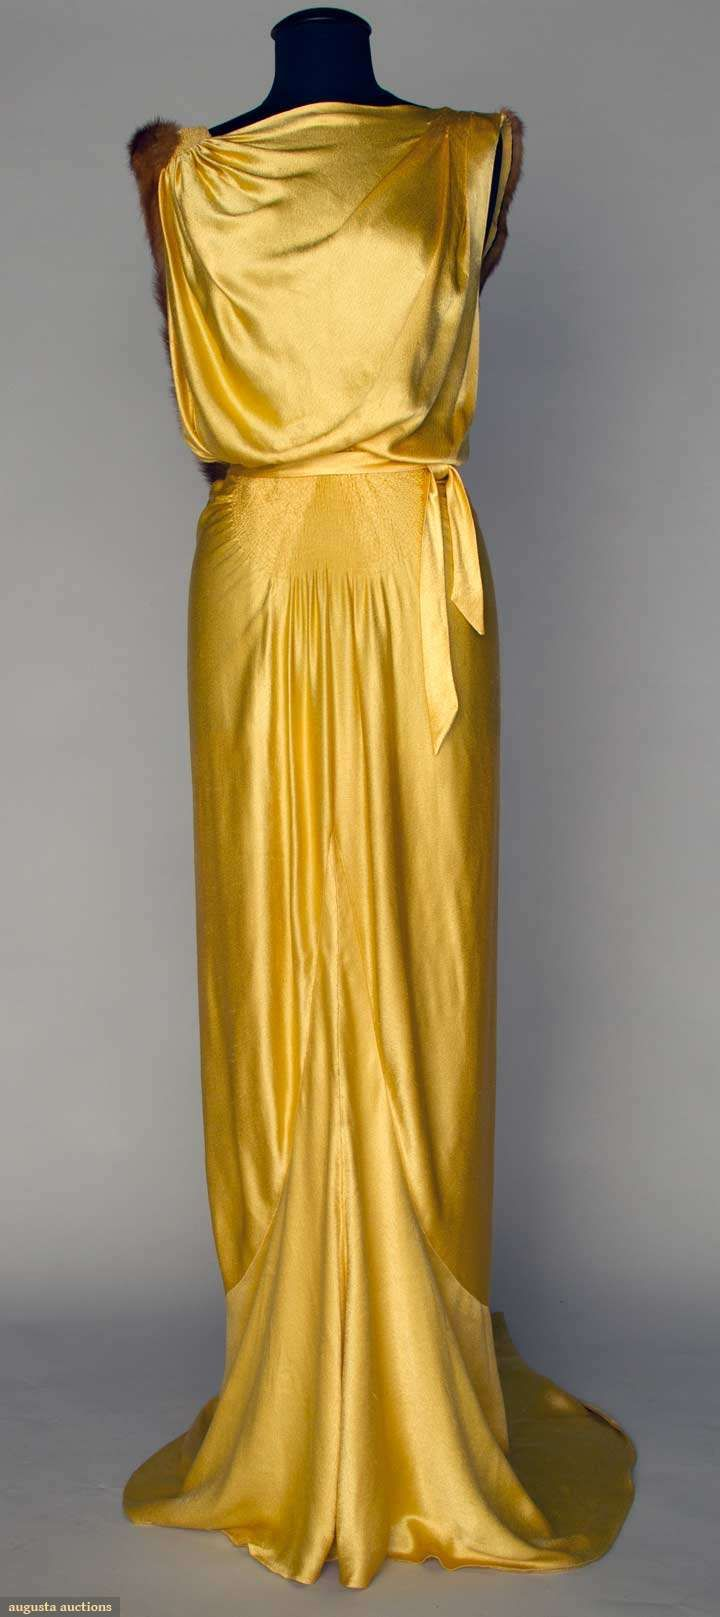 Evening Gown: ca. 1930's, satin, very low cut back with floating fur-trimmed panel, self fabric belt.